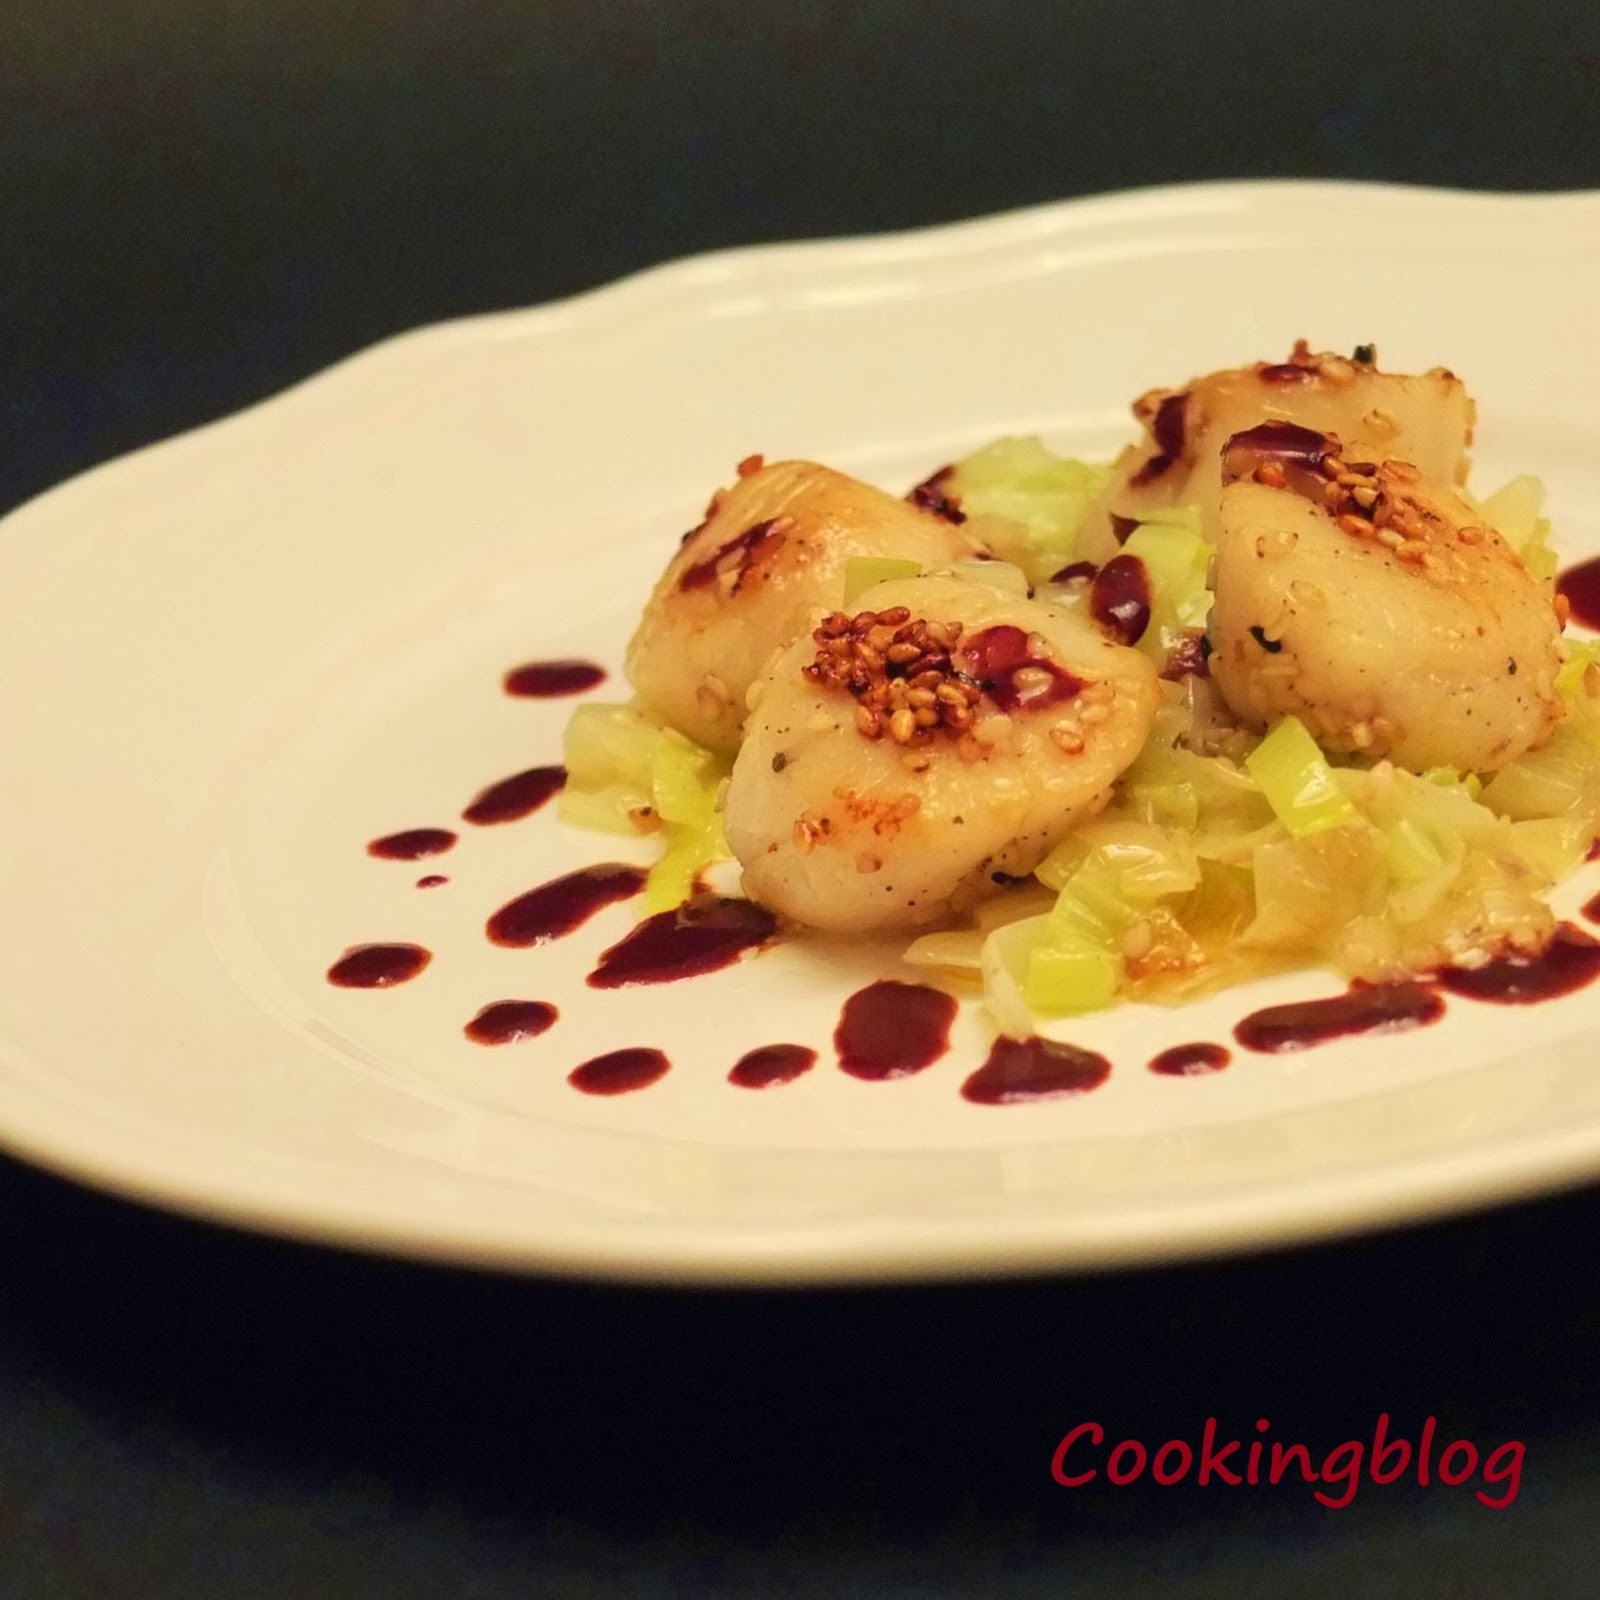 Vieiras com crosta de sésamo e vinagrete de chocolate | Scallops in sesame crust and chocolate vinaigrette